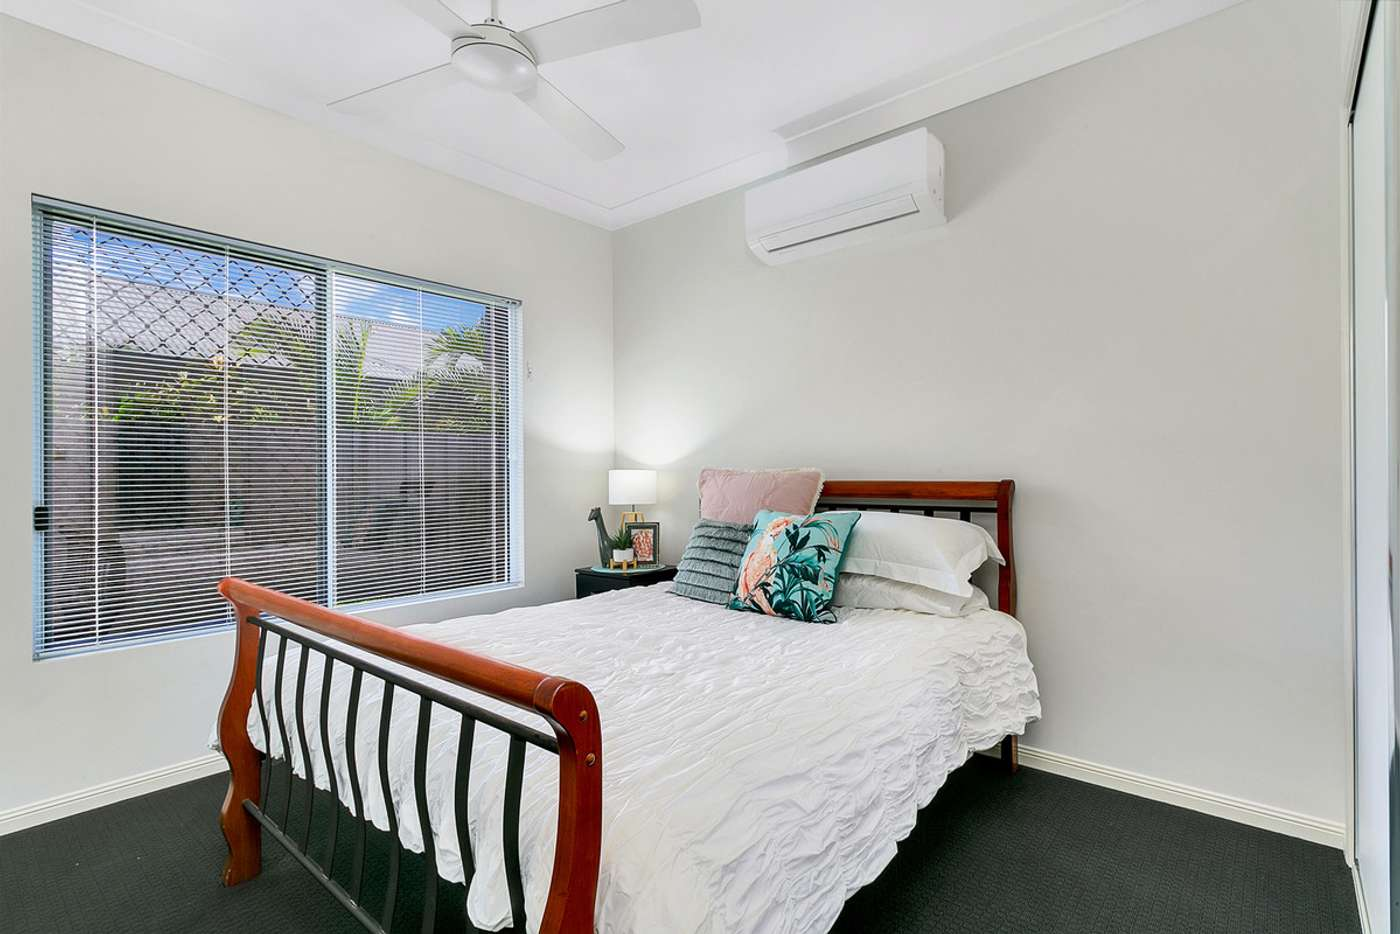 Sixth view of Homely house listing, 6 Munburra Parade, Smithfield QLD 4878